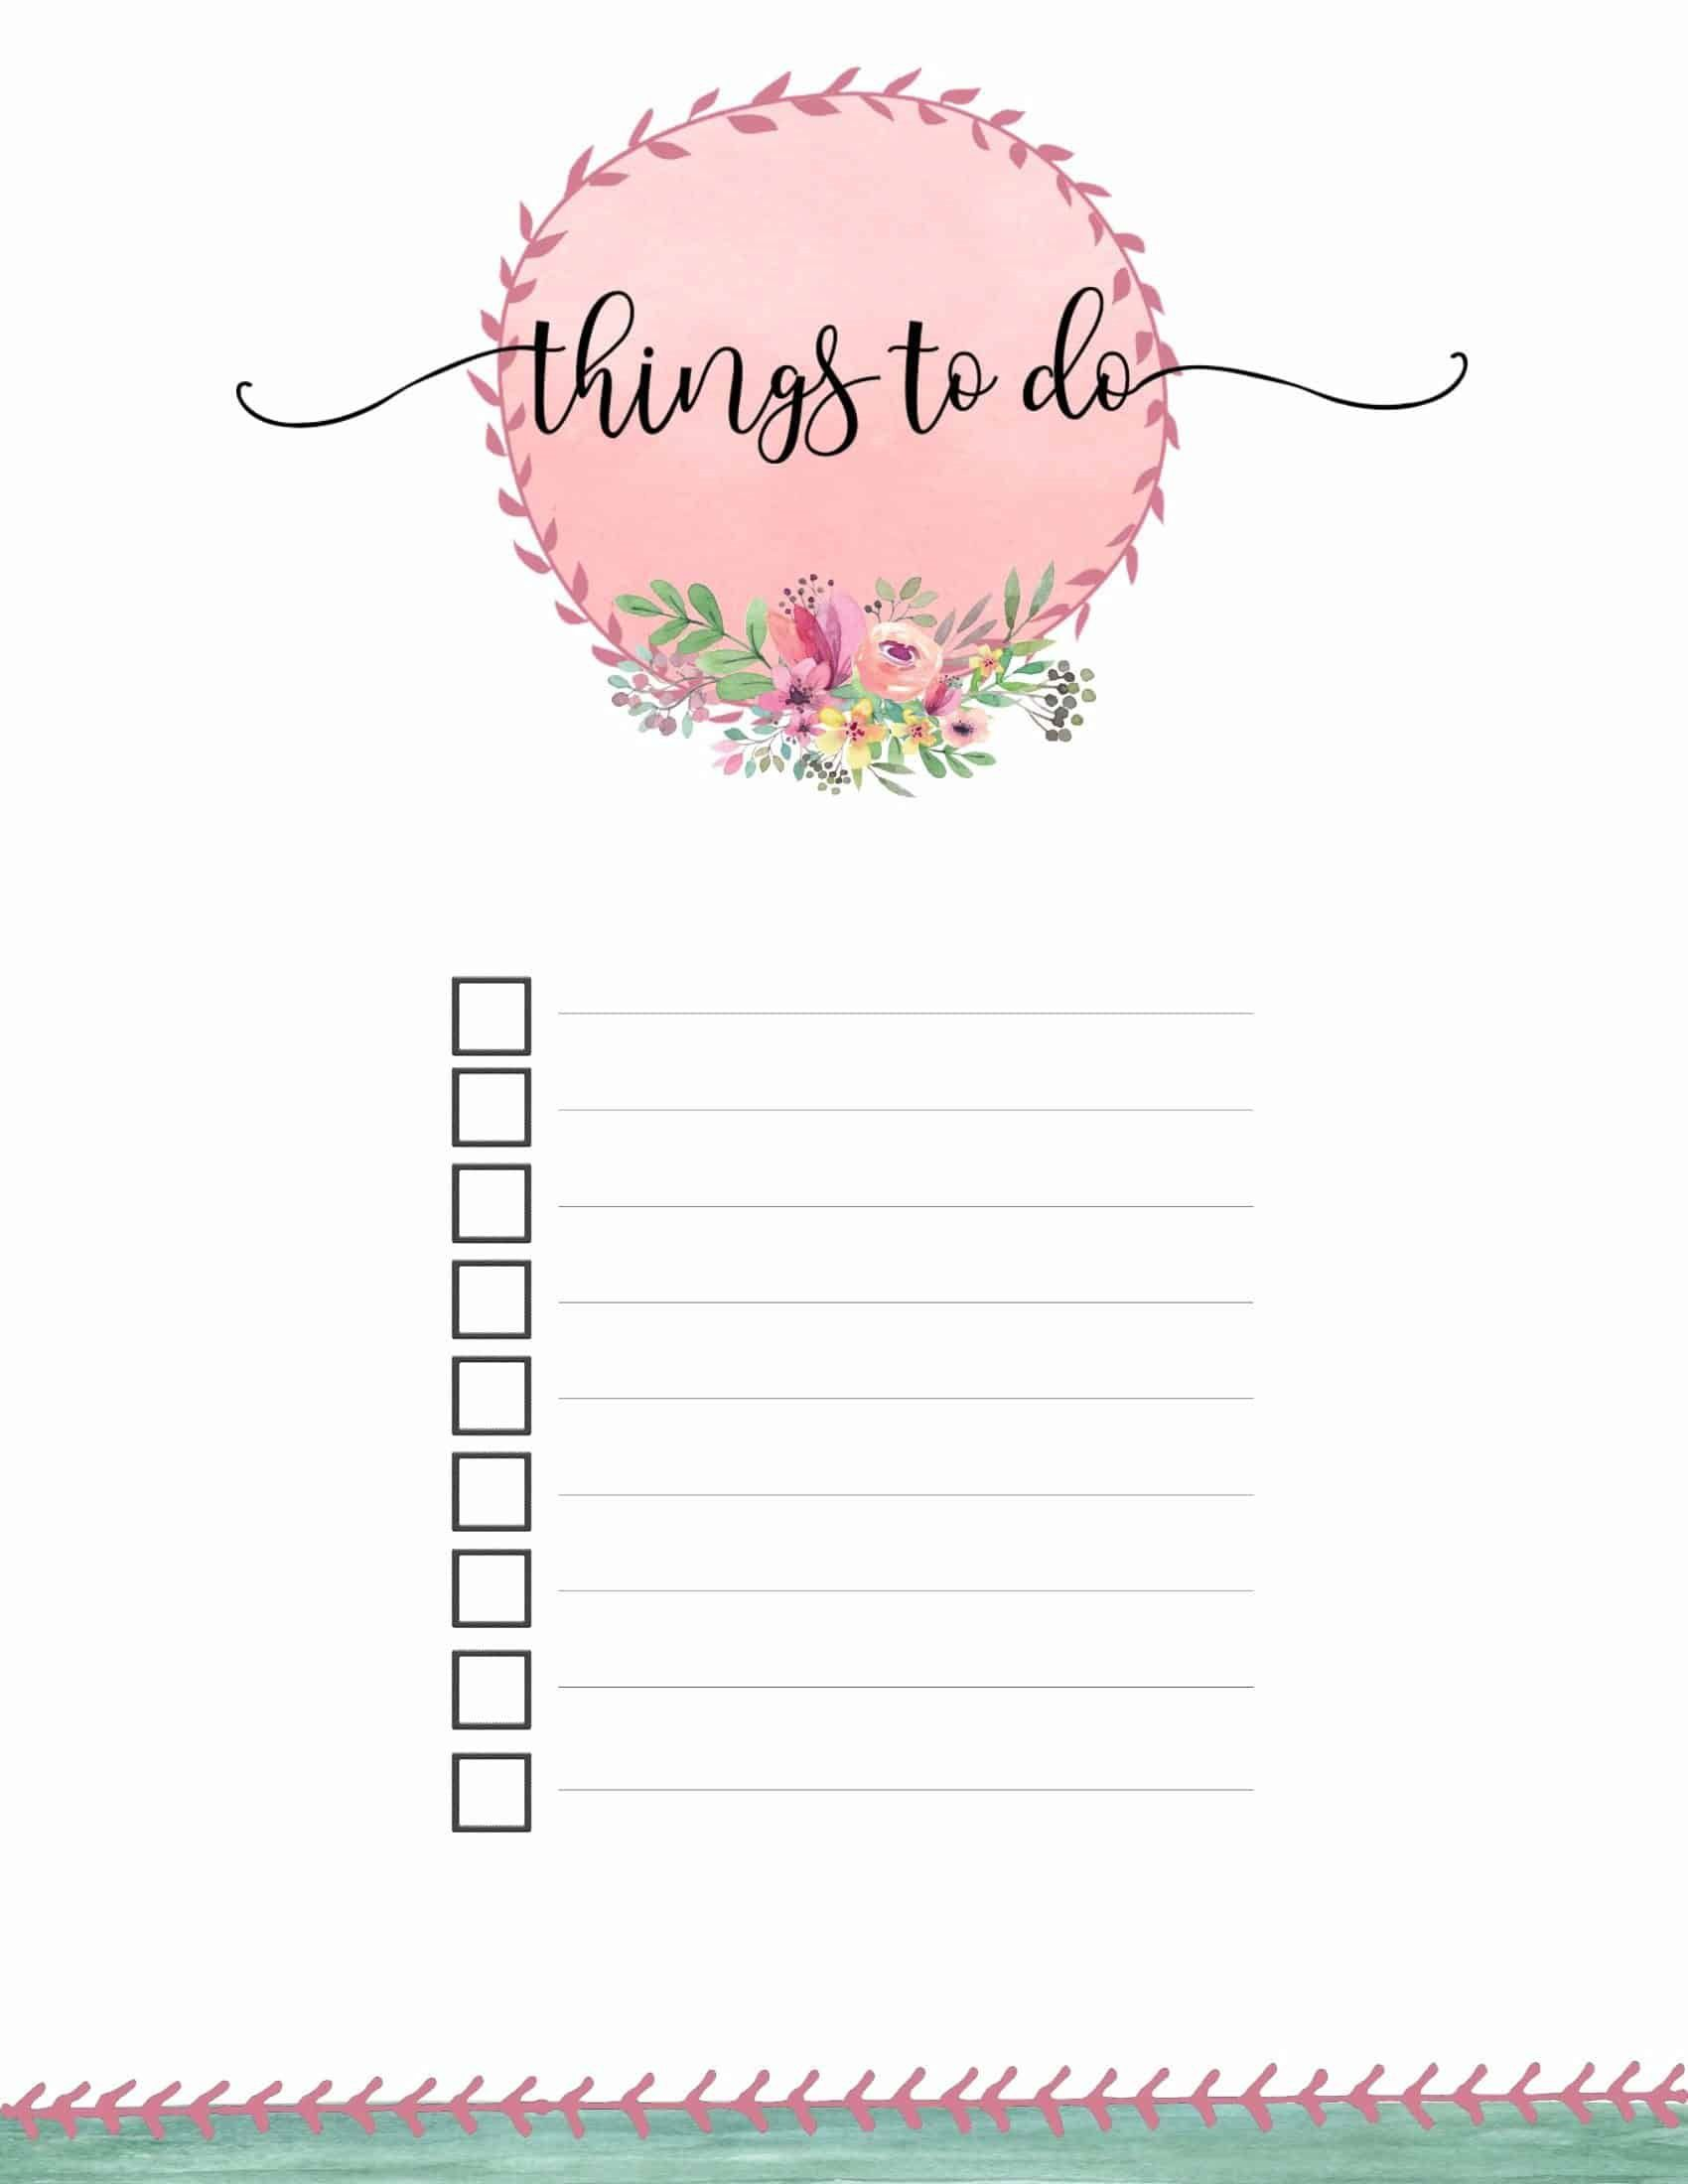 004 Remarkable Thing To Do List Template Example Full